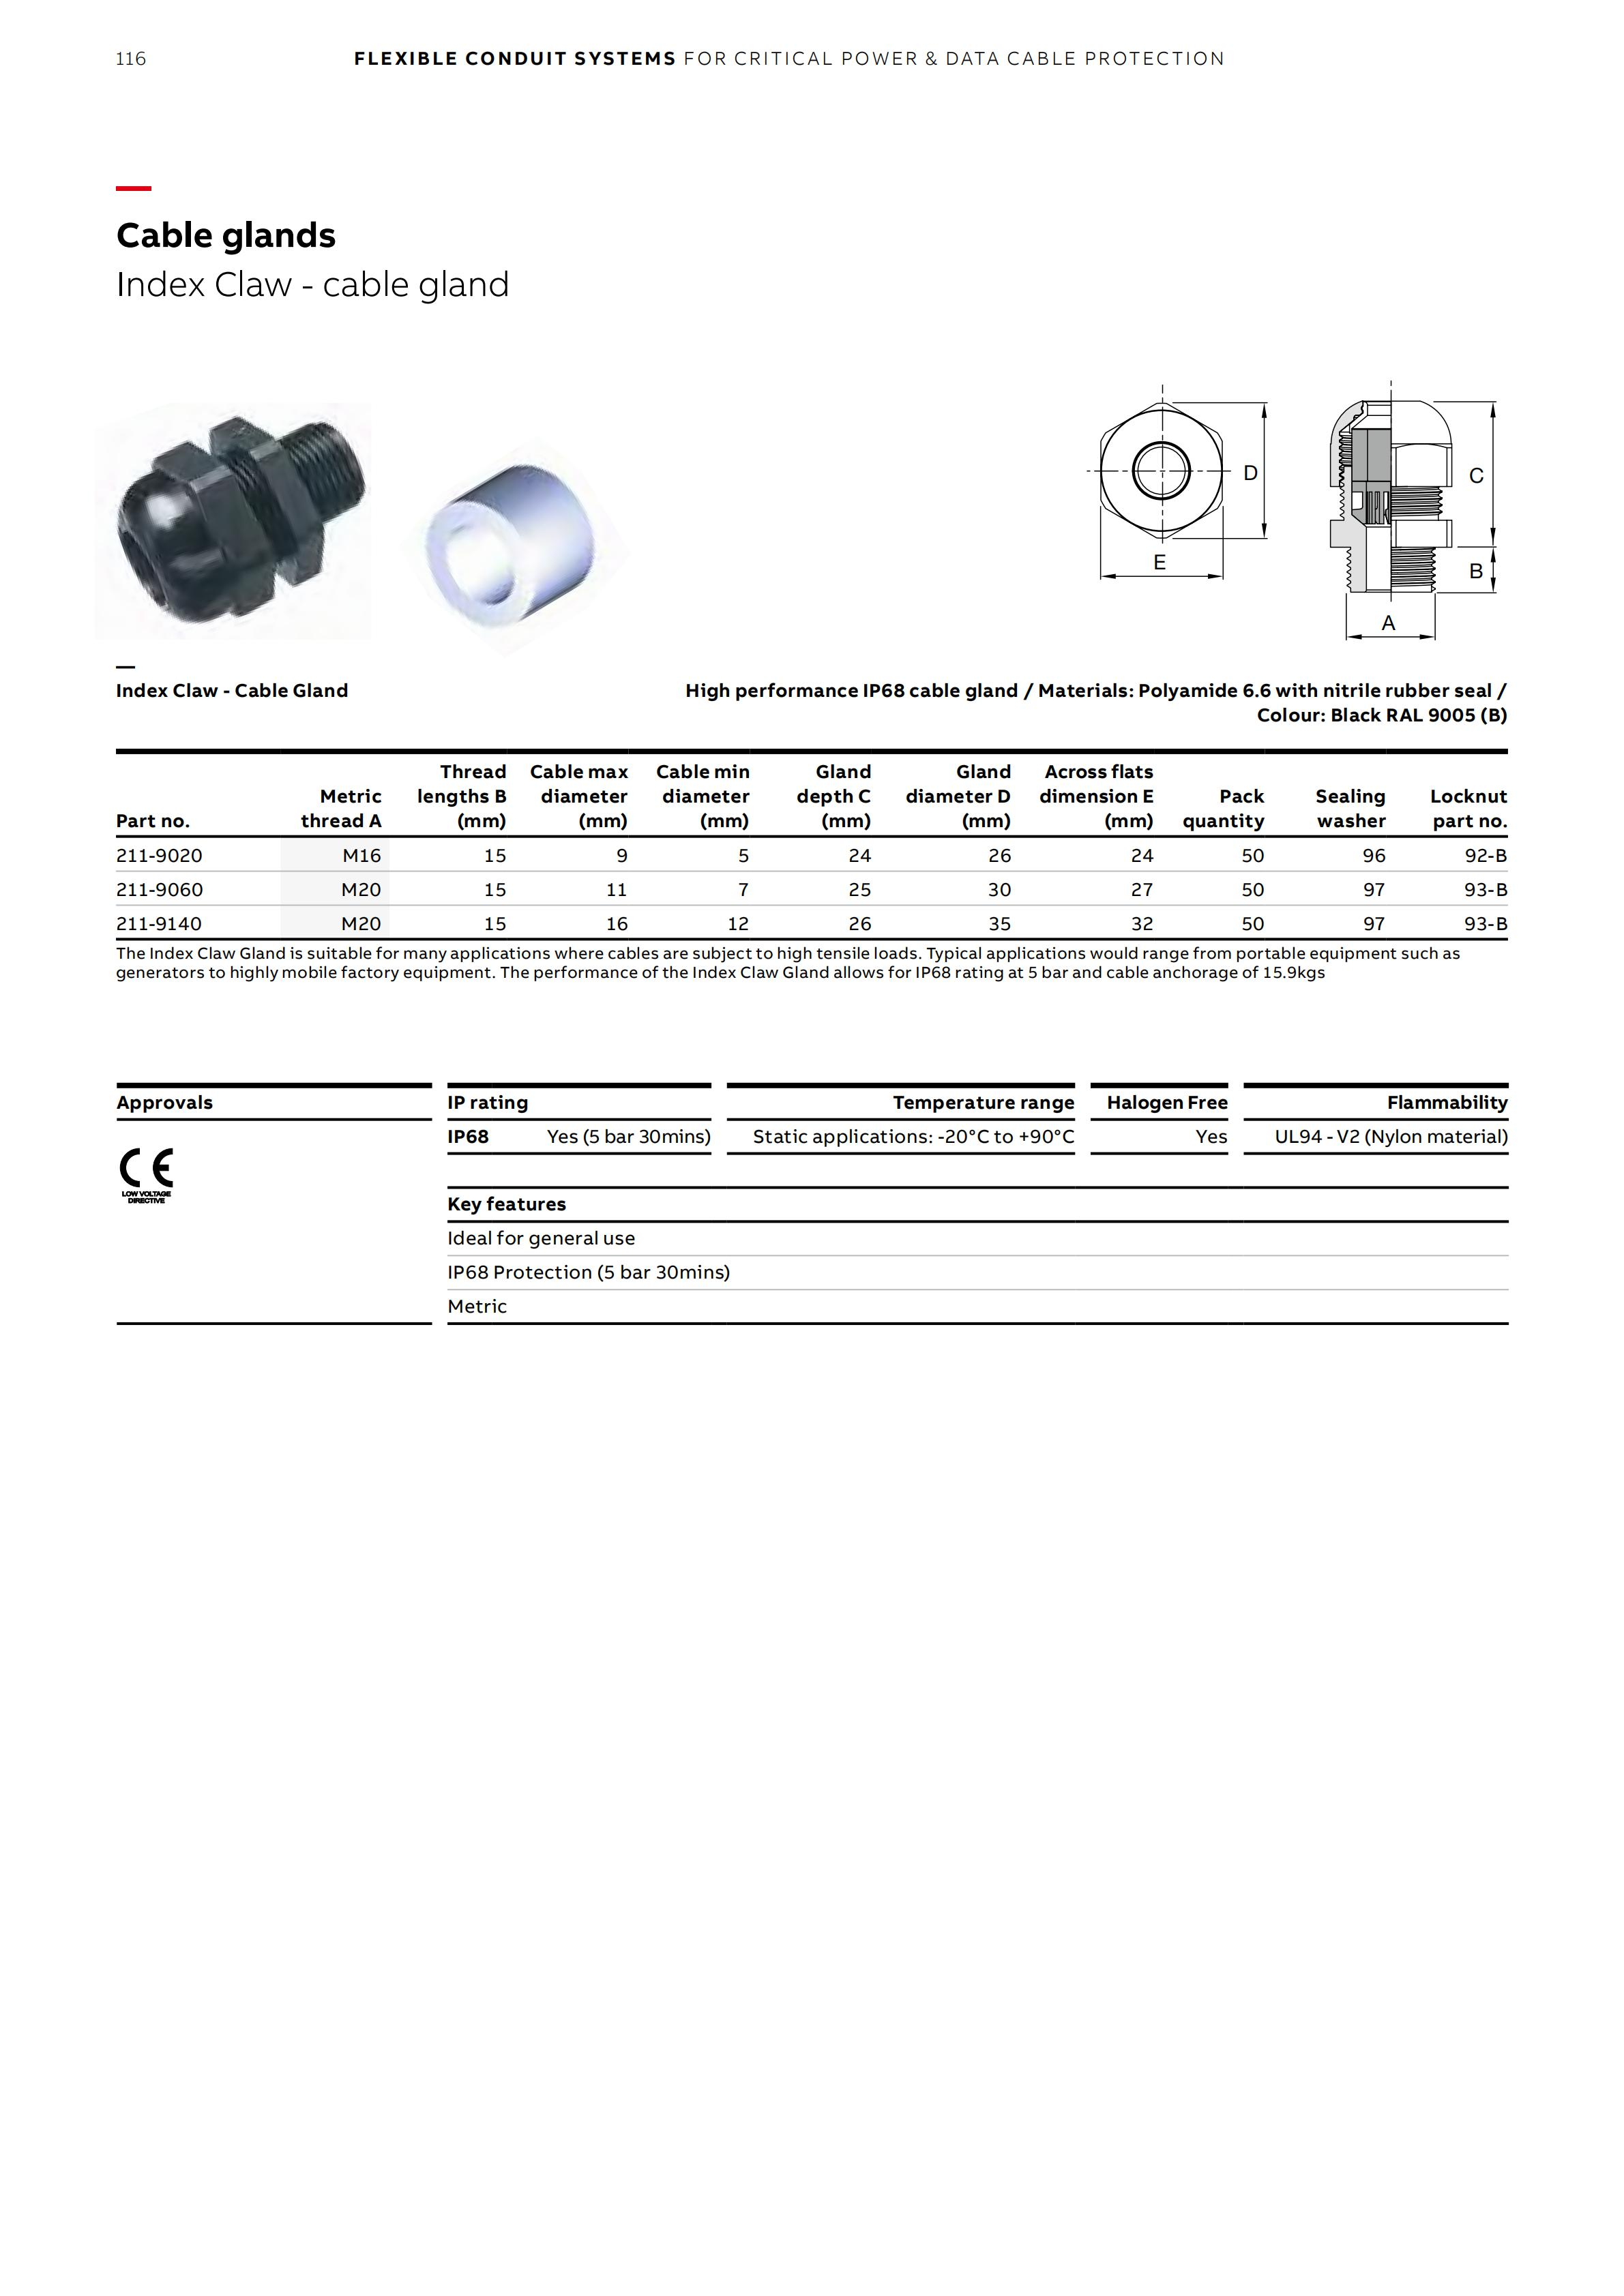 ADAPTAFLEX ABB CATALOGUE ENGLISH (Aug 18)_116.jpg